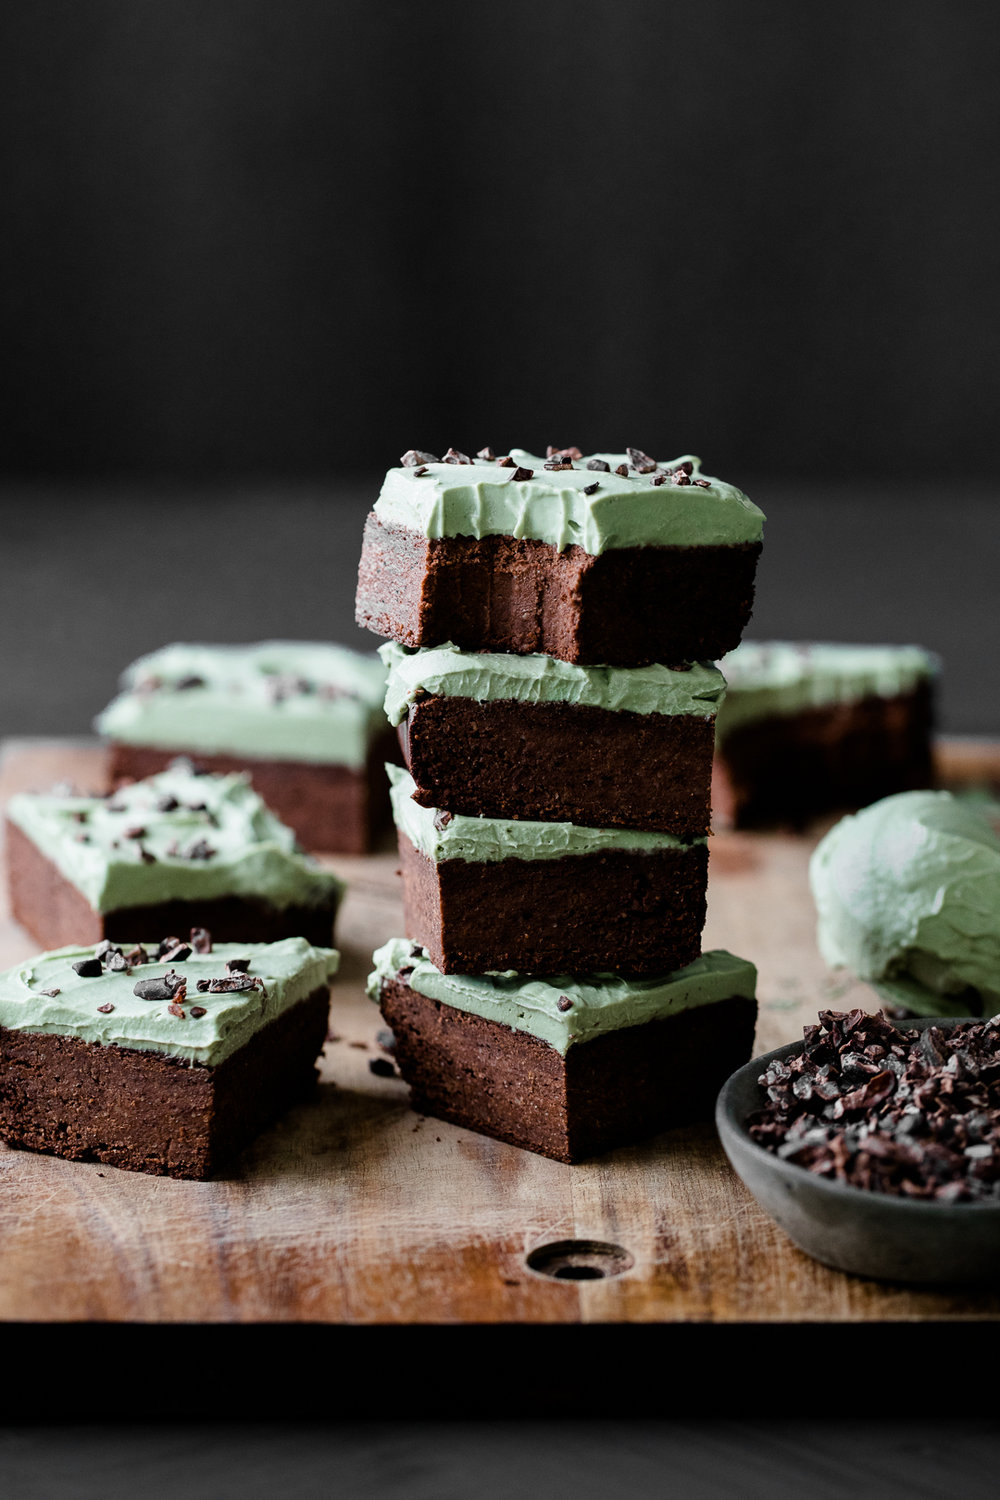 Choc_Fudge_Peppermint_Brownie3_Portrait_by_Jordan_Pie_Nutritionist_Photographer-1.jpg